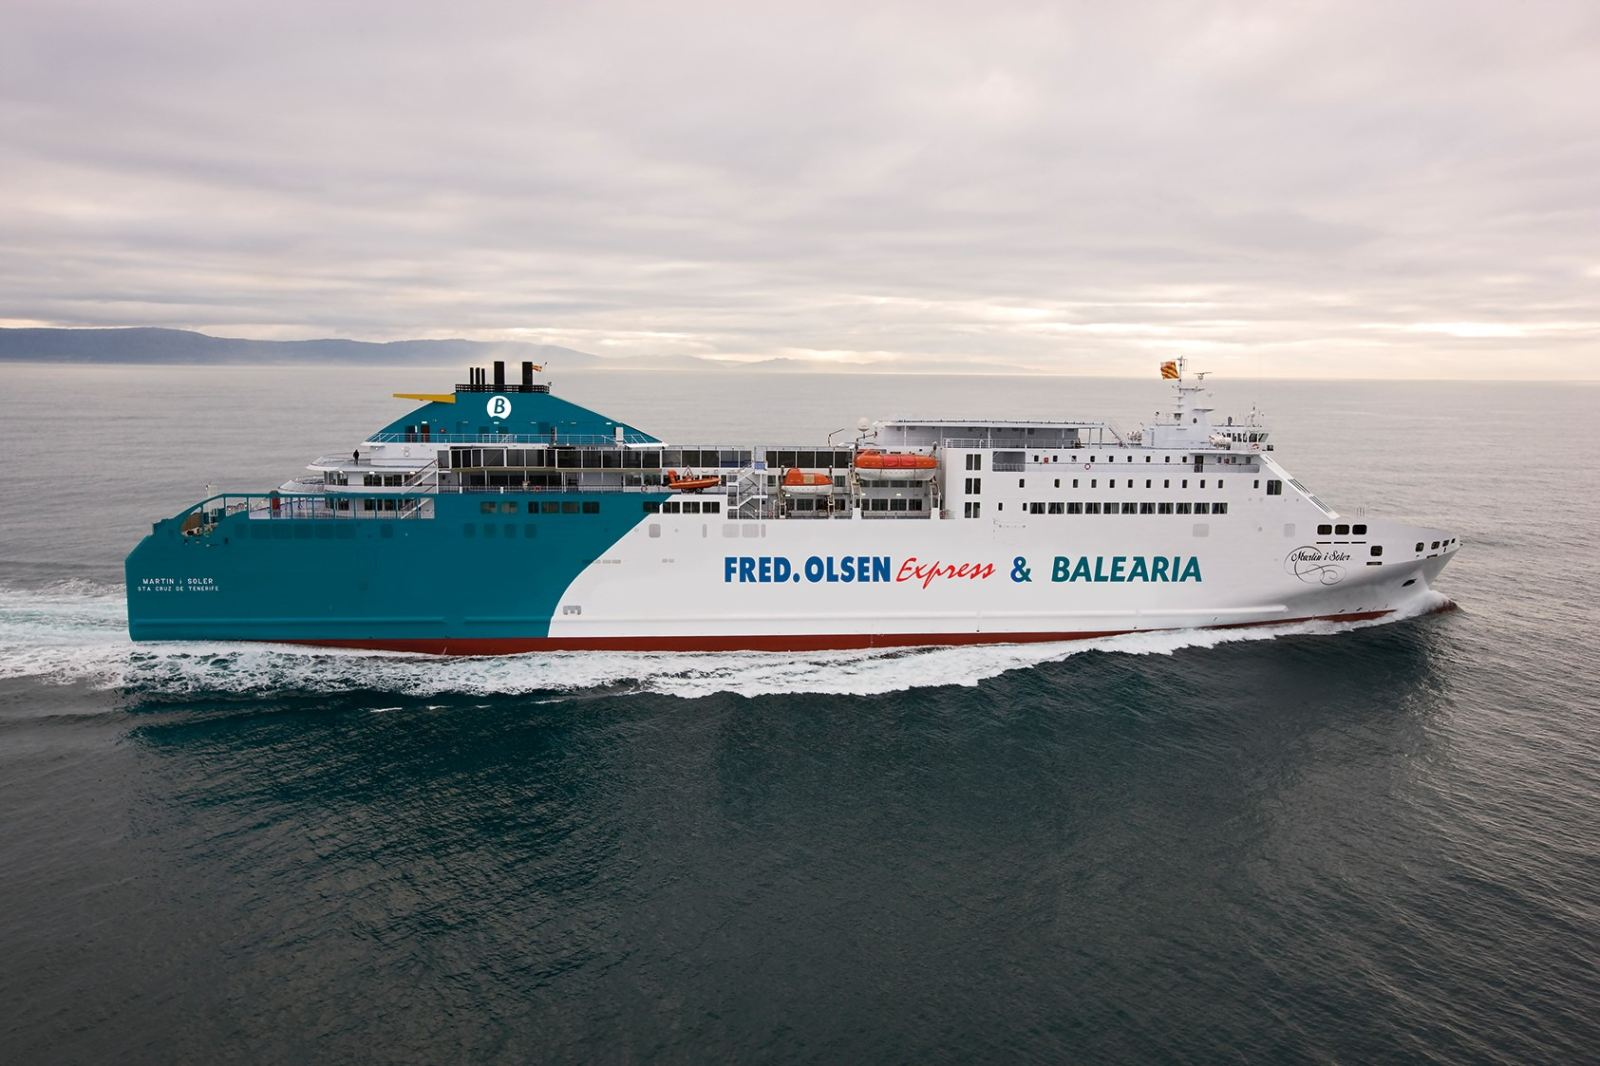 Fred. Olsen Express y Baleària ship, Connection Canary Islands-Huelva